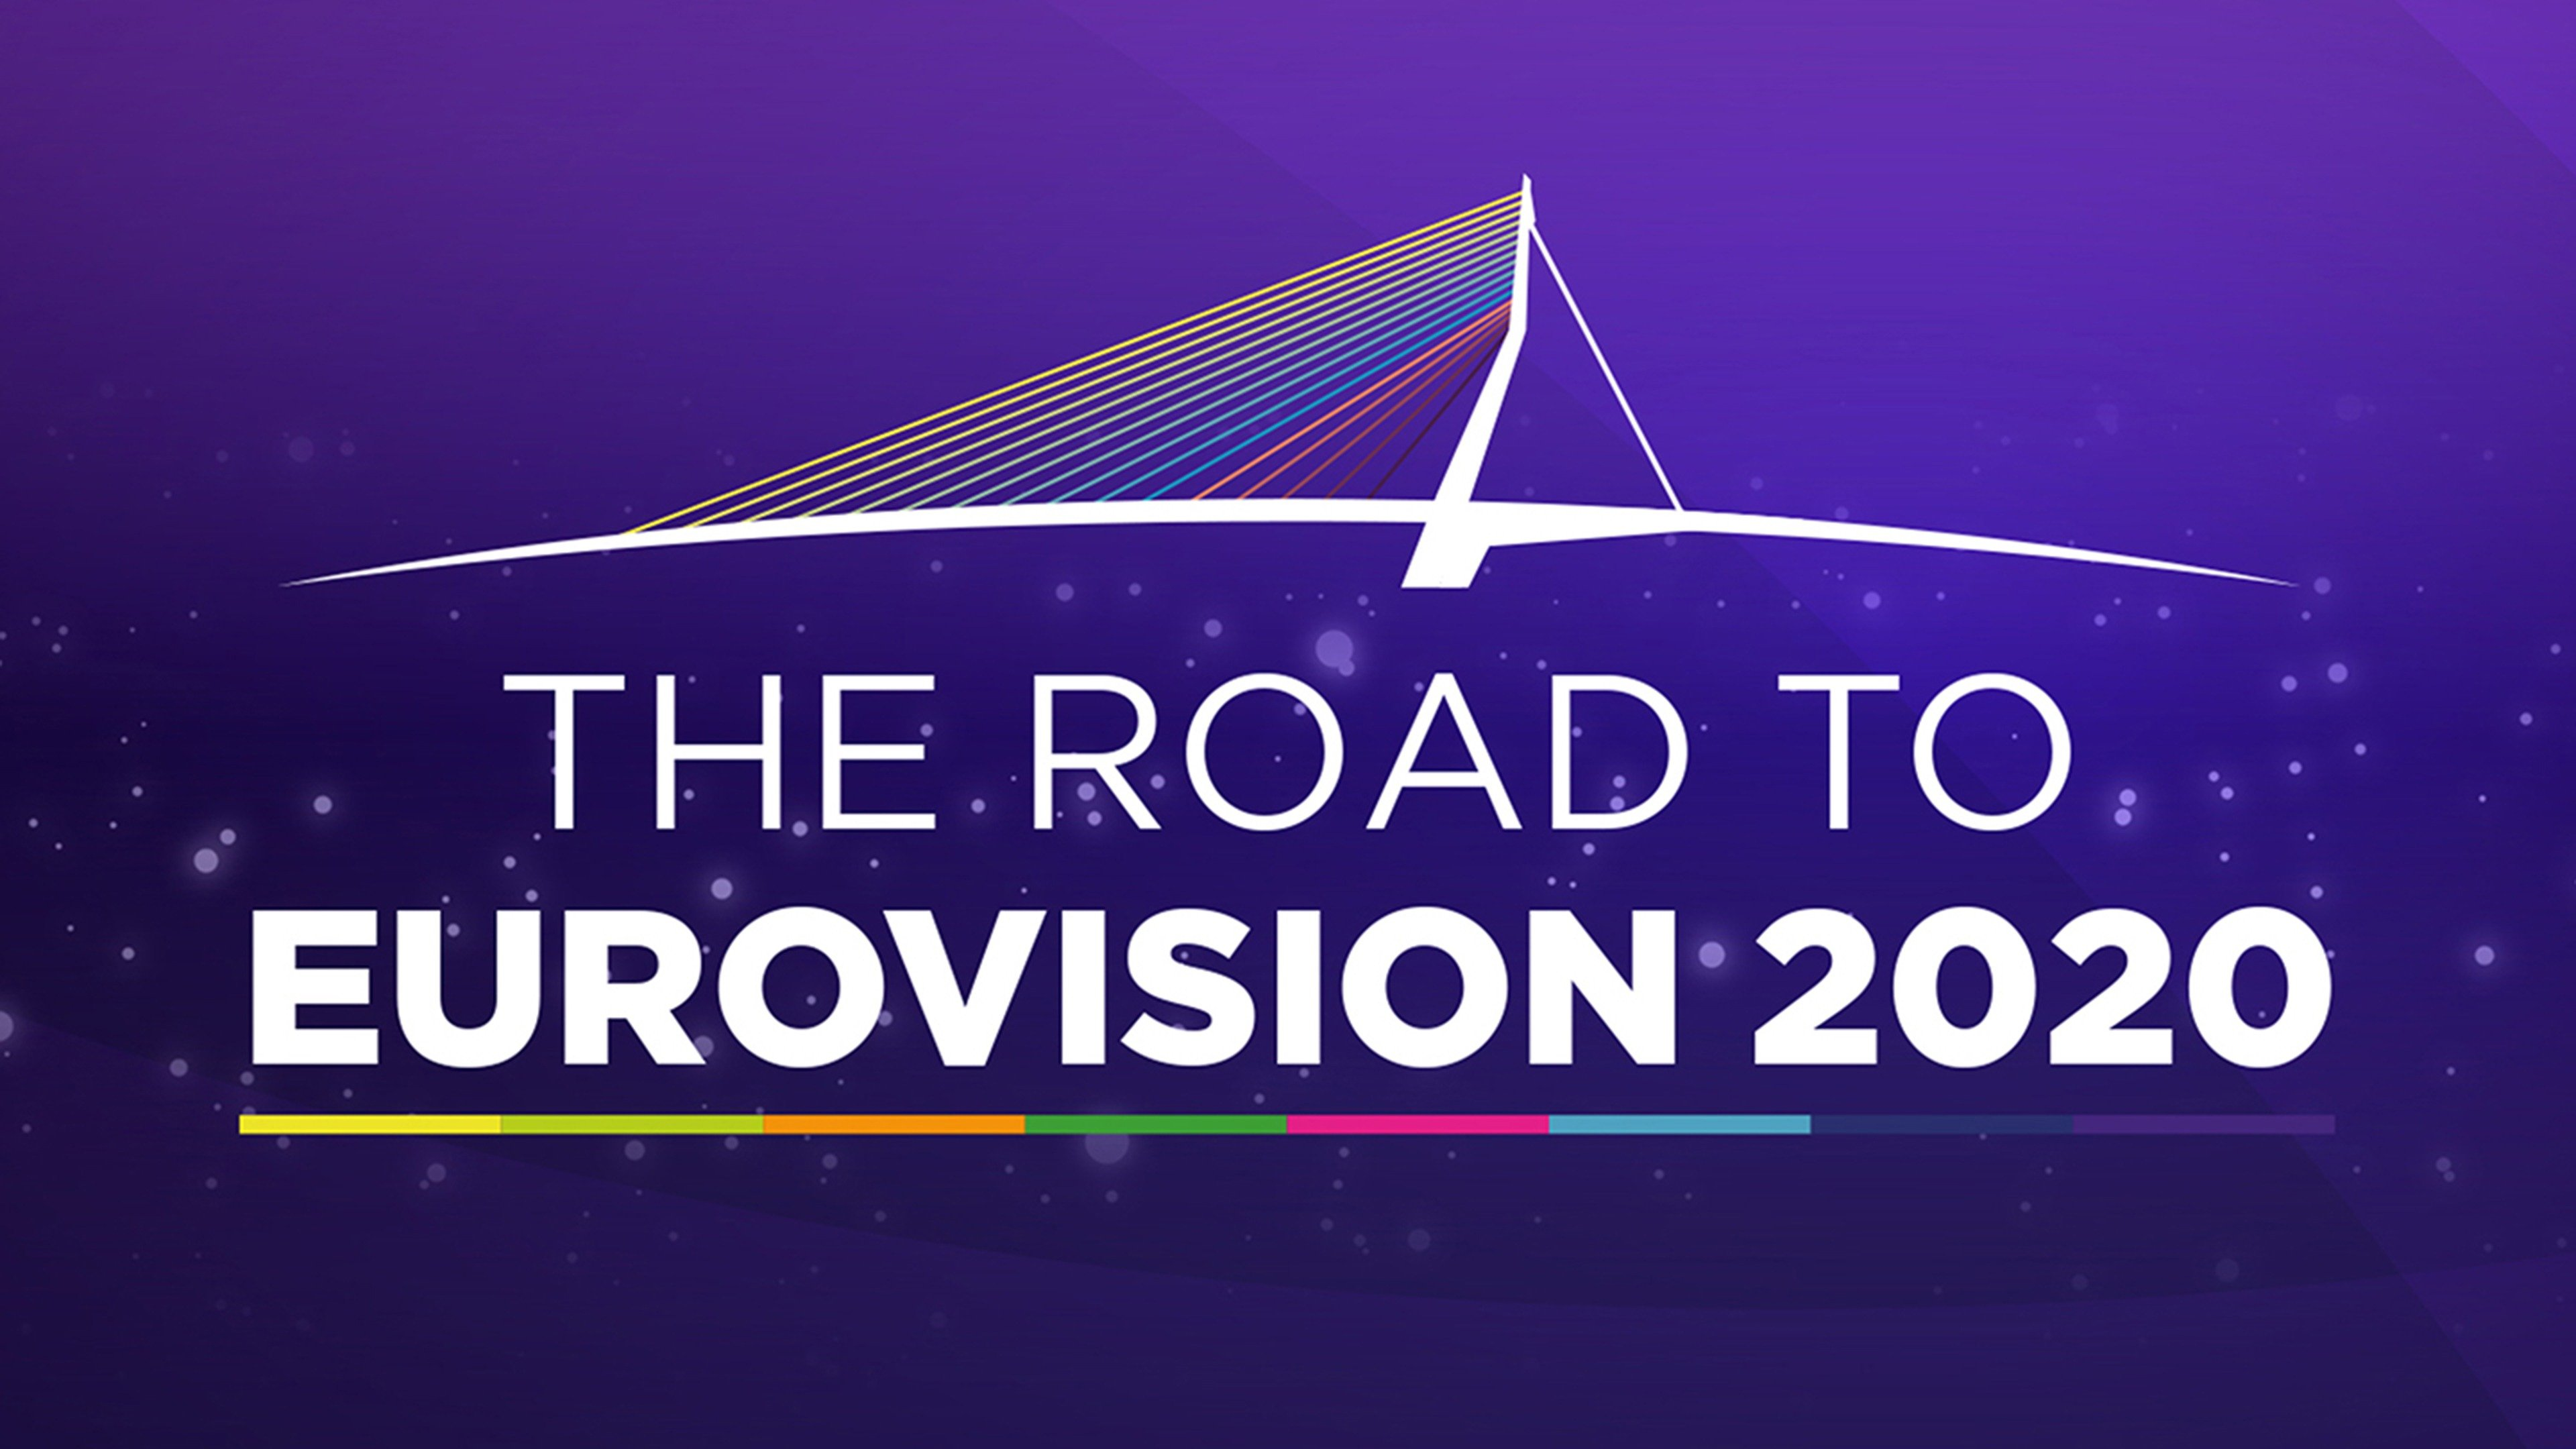 The Road To Eurovision